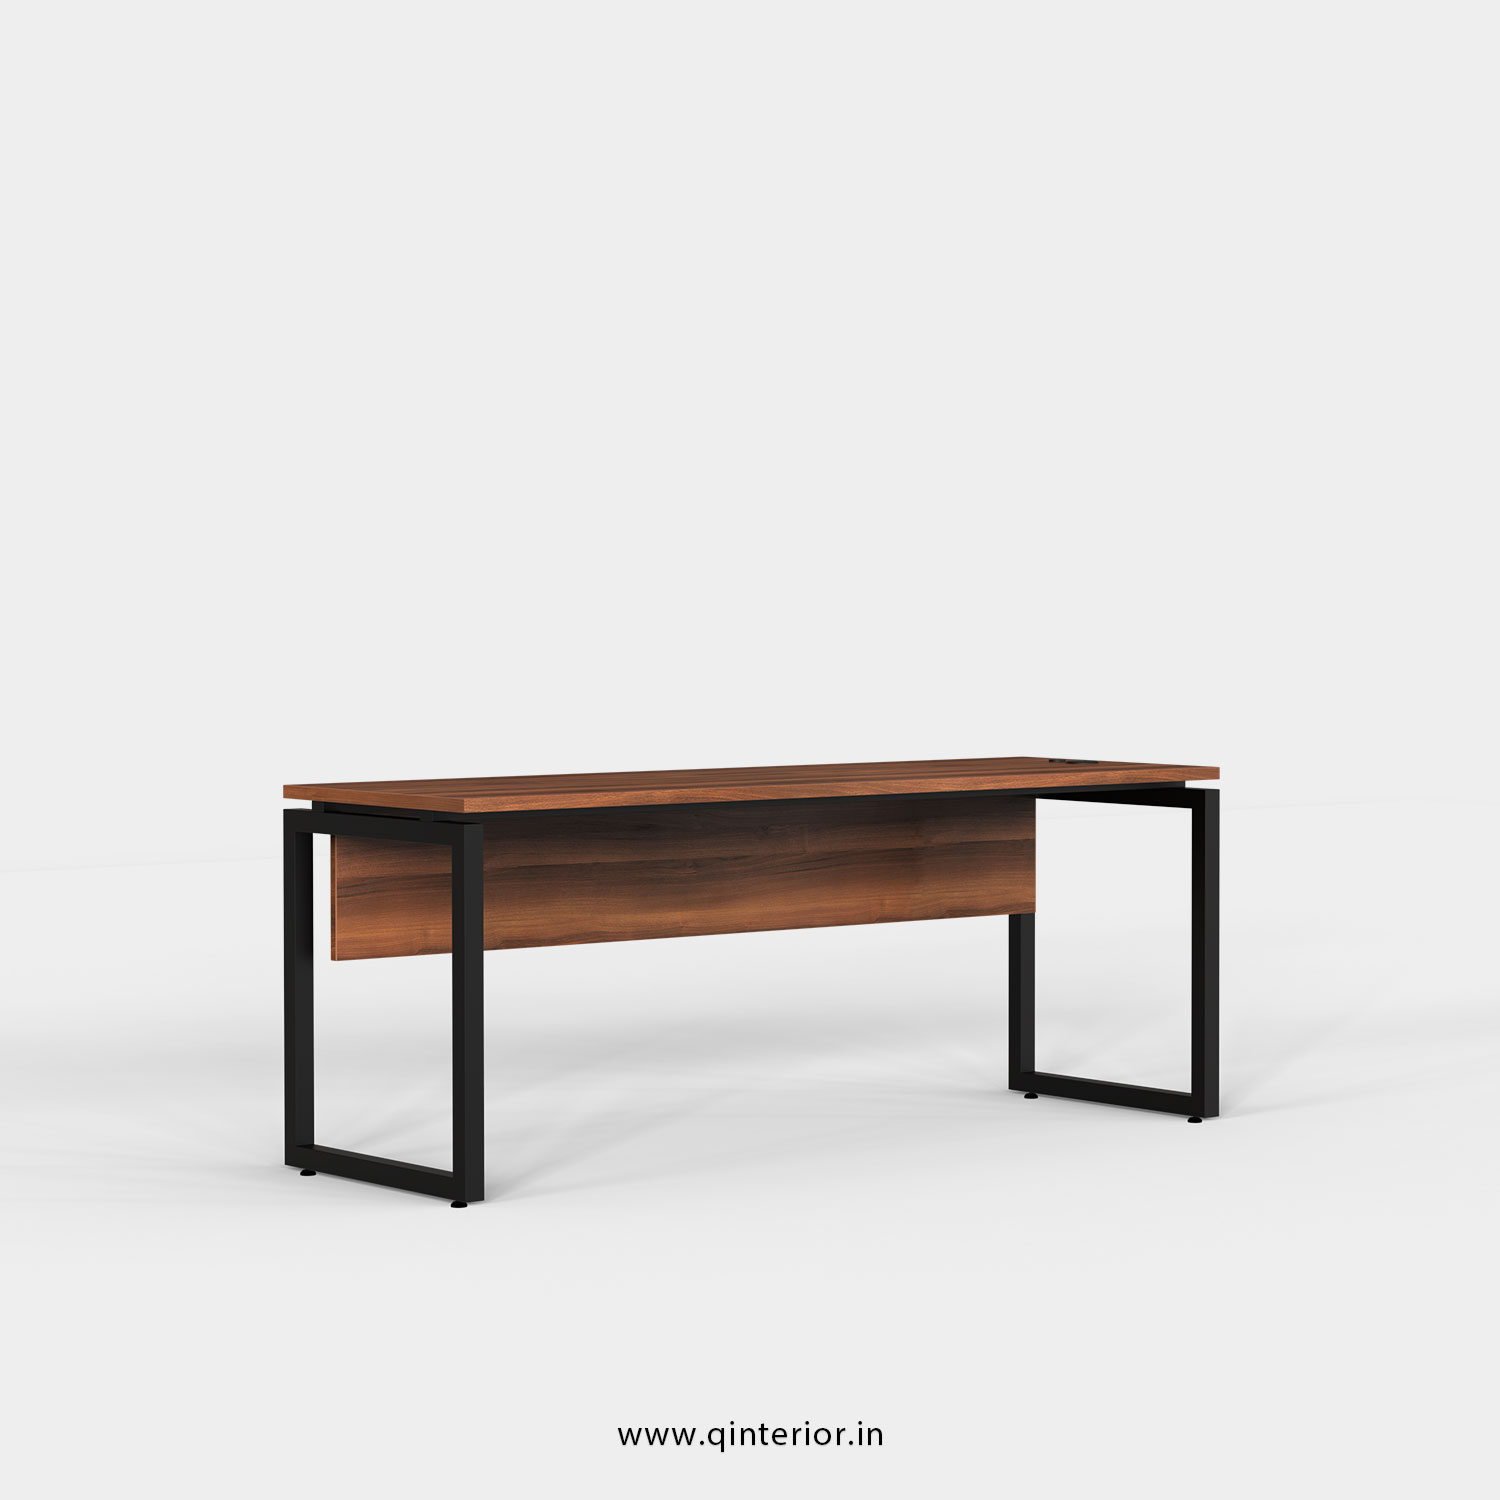 Aaron Executive Table in Teak Finish - OET001 C3